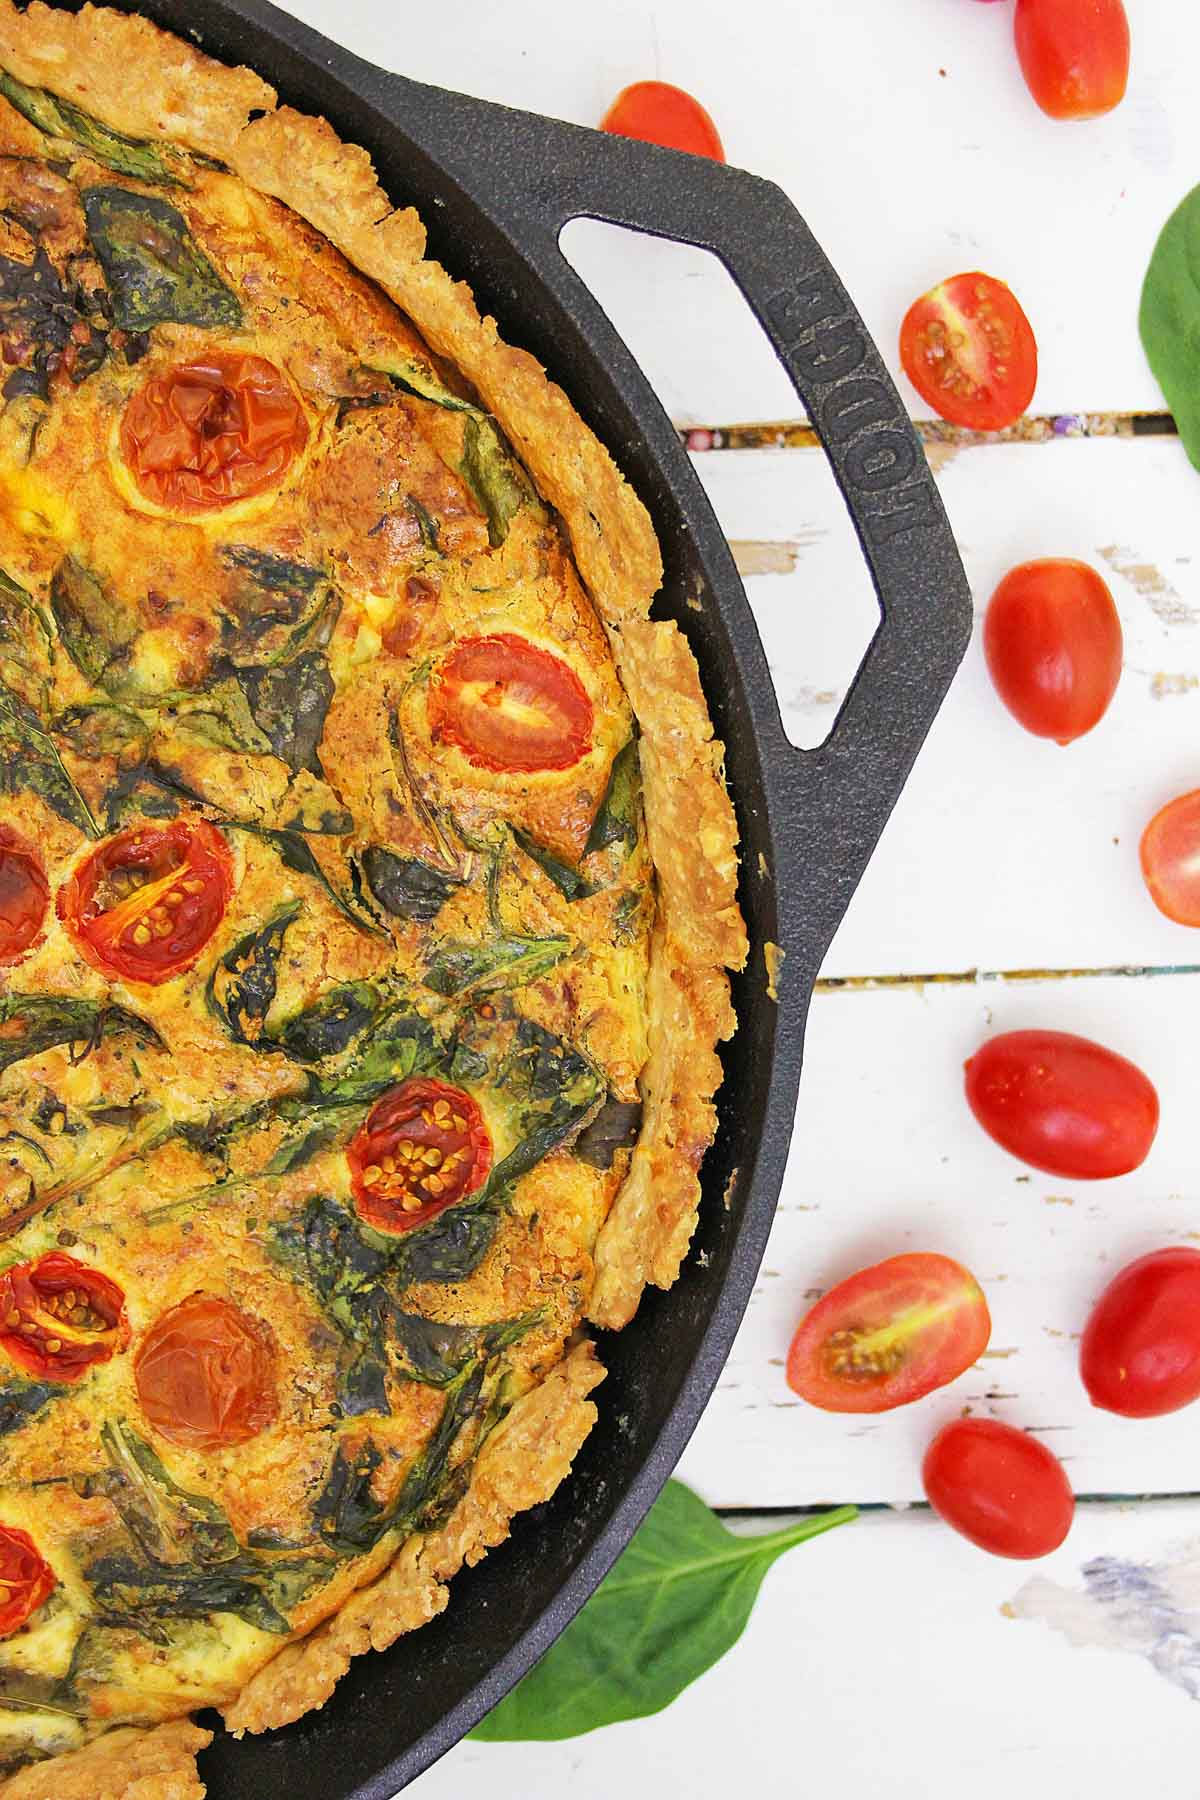 baked tomato and spinach quiche in a cast iron skillet with fresh cherry tomatoes on a white table.